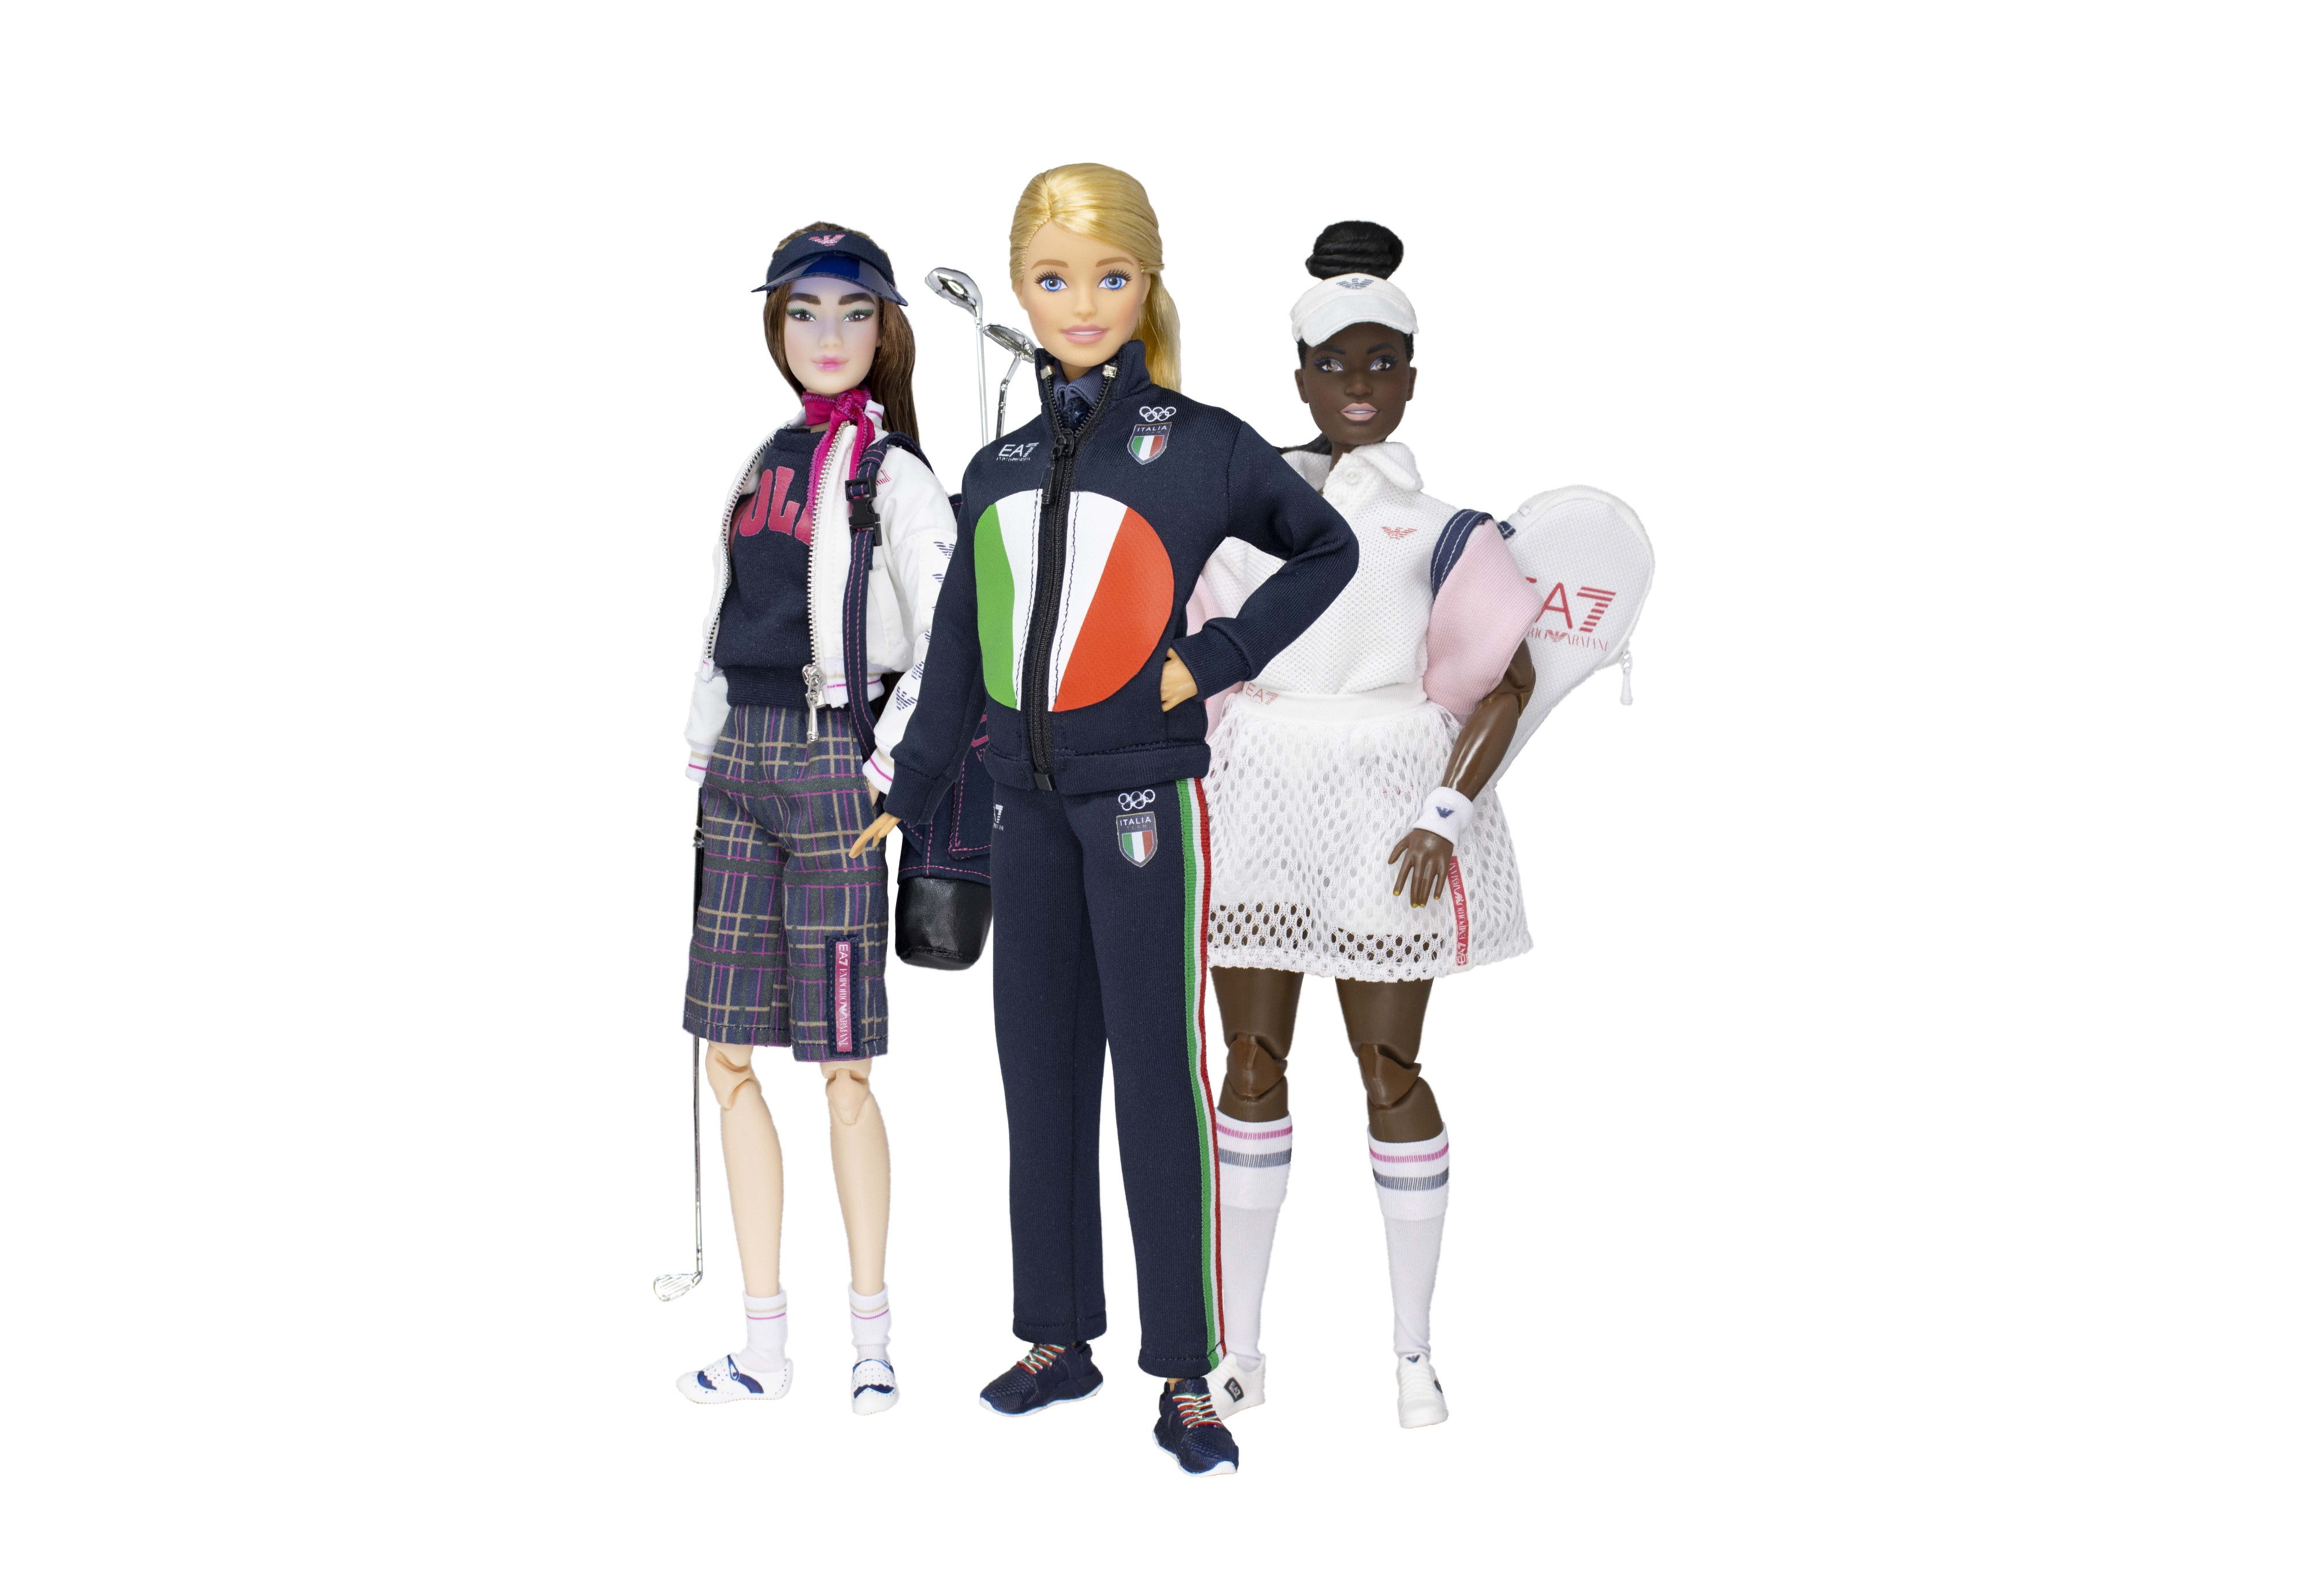 Tokyo 2020: the 3 Barbie One-of-a-Kind charity auction officially starts